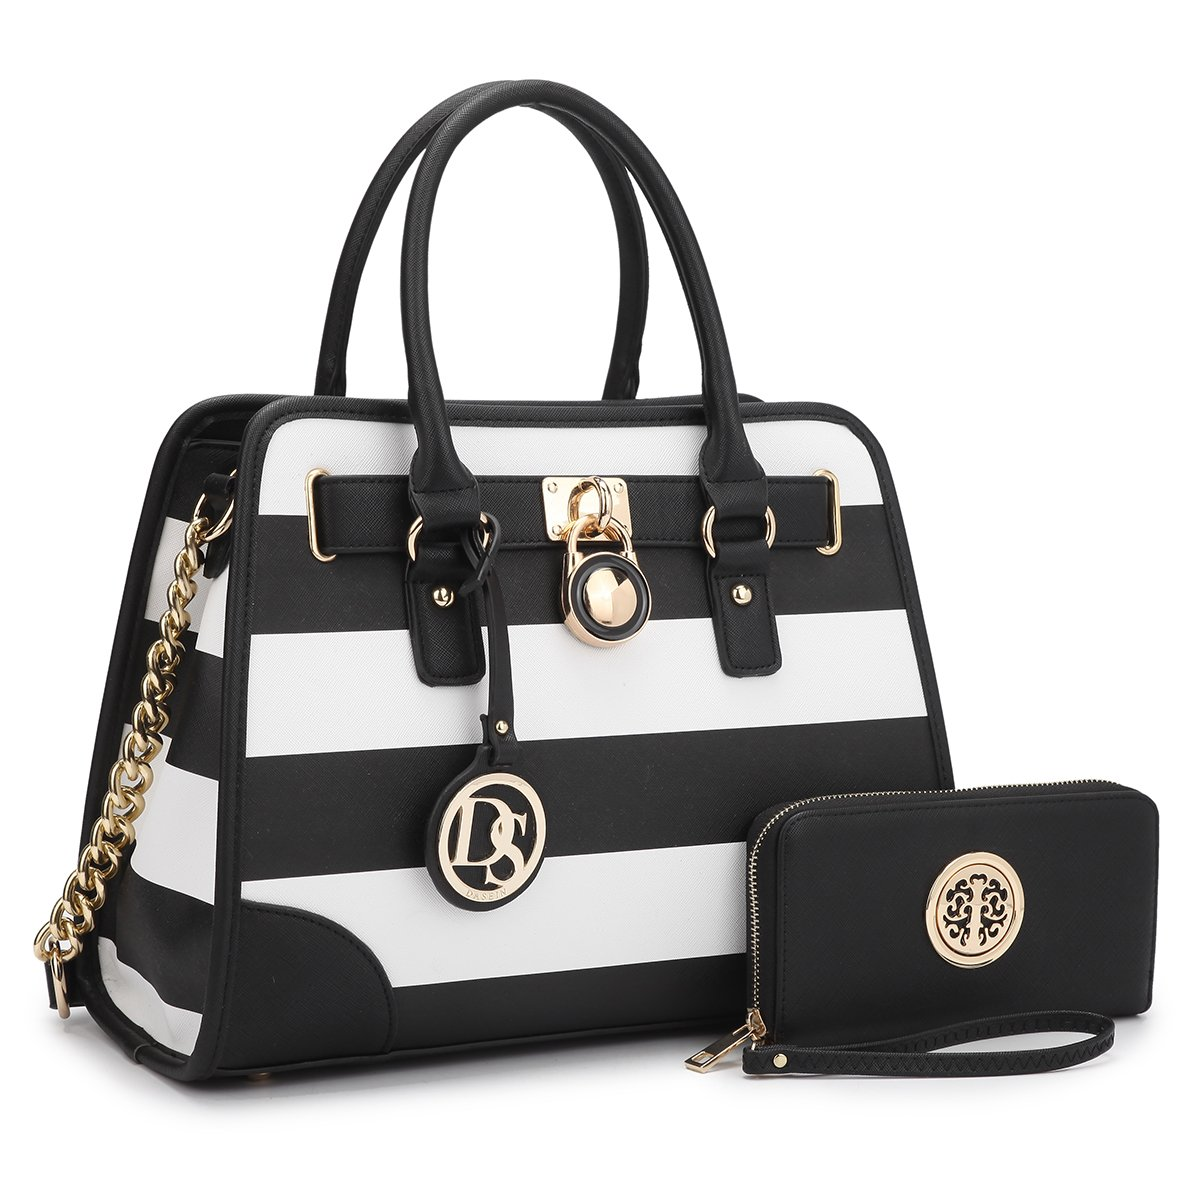 MMK collection Fashion Packlock Handbag for Women~Signature fashion Designer Purse with spring colors~Perfect Women Satchel Purse ~ Beautiful Designer handbag & wallet (XL-02-6892-Black/WHITE)